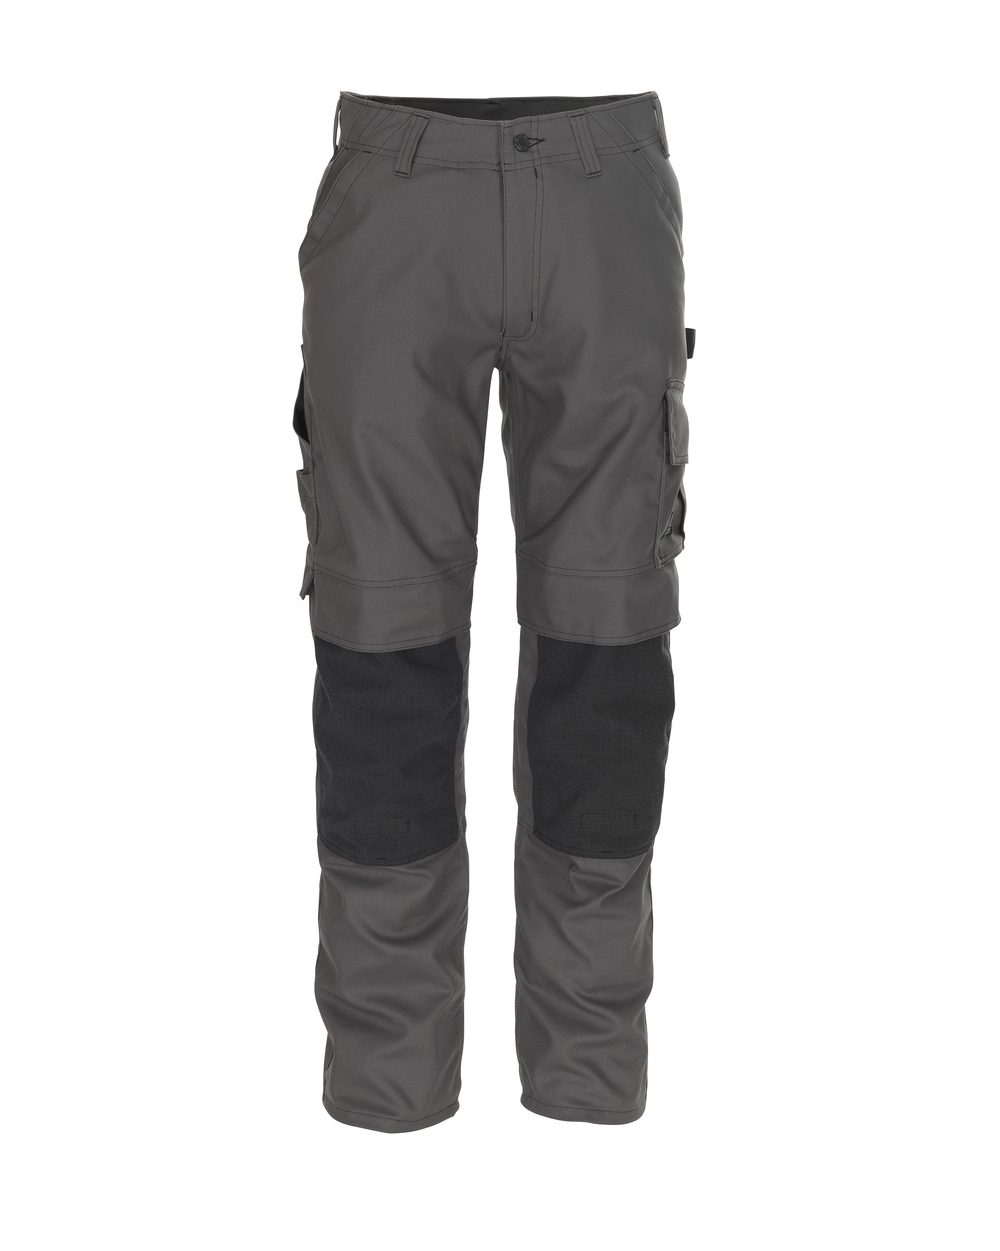 Lerida Trousers with Kevlar® Knee Pad Pockets Gray